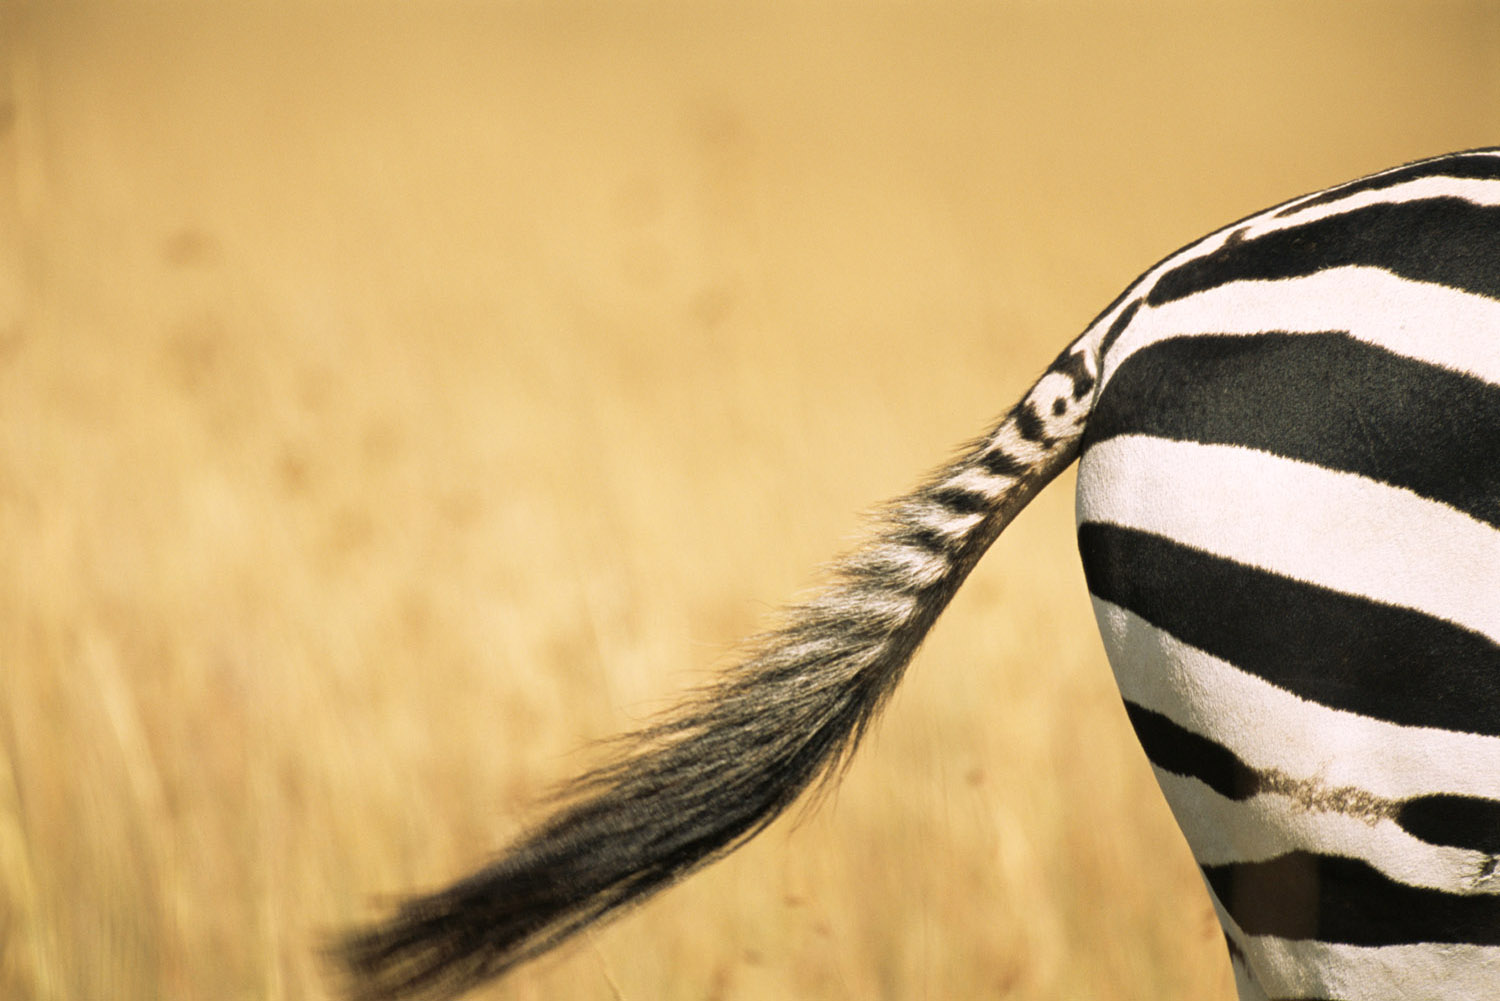 Common zebra behind and tail, Masai Mara National Reserve, Kenya